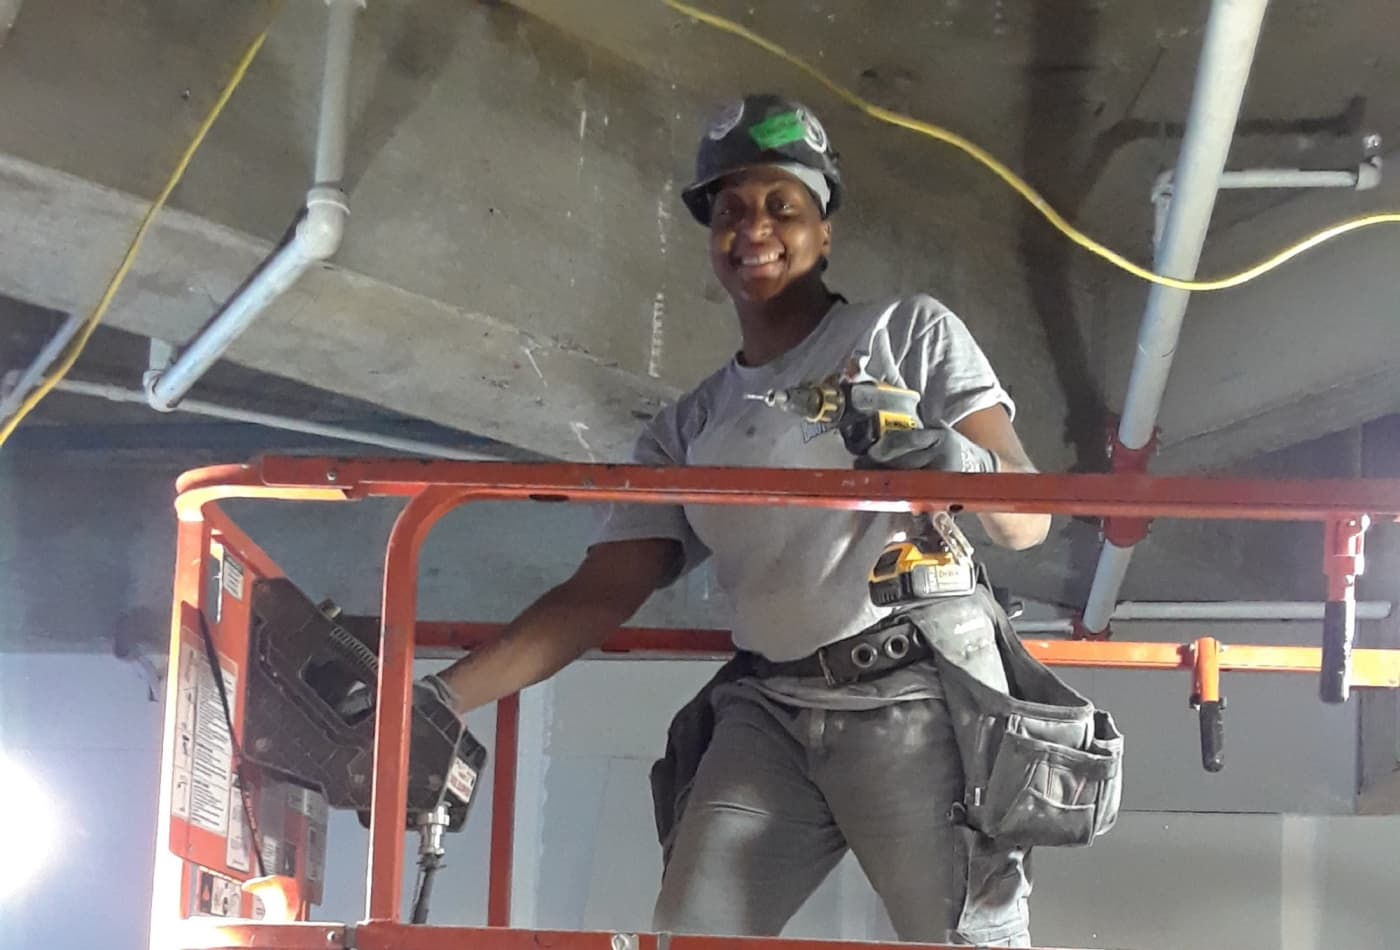 Here's what it's like to be a woman construction worker